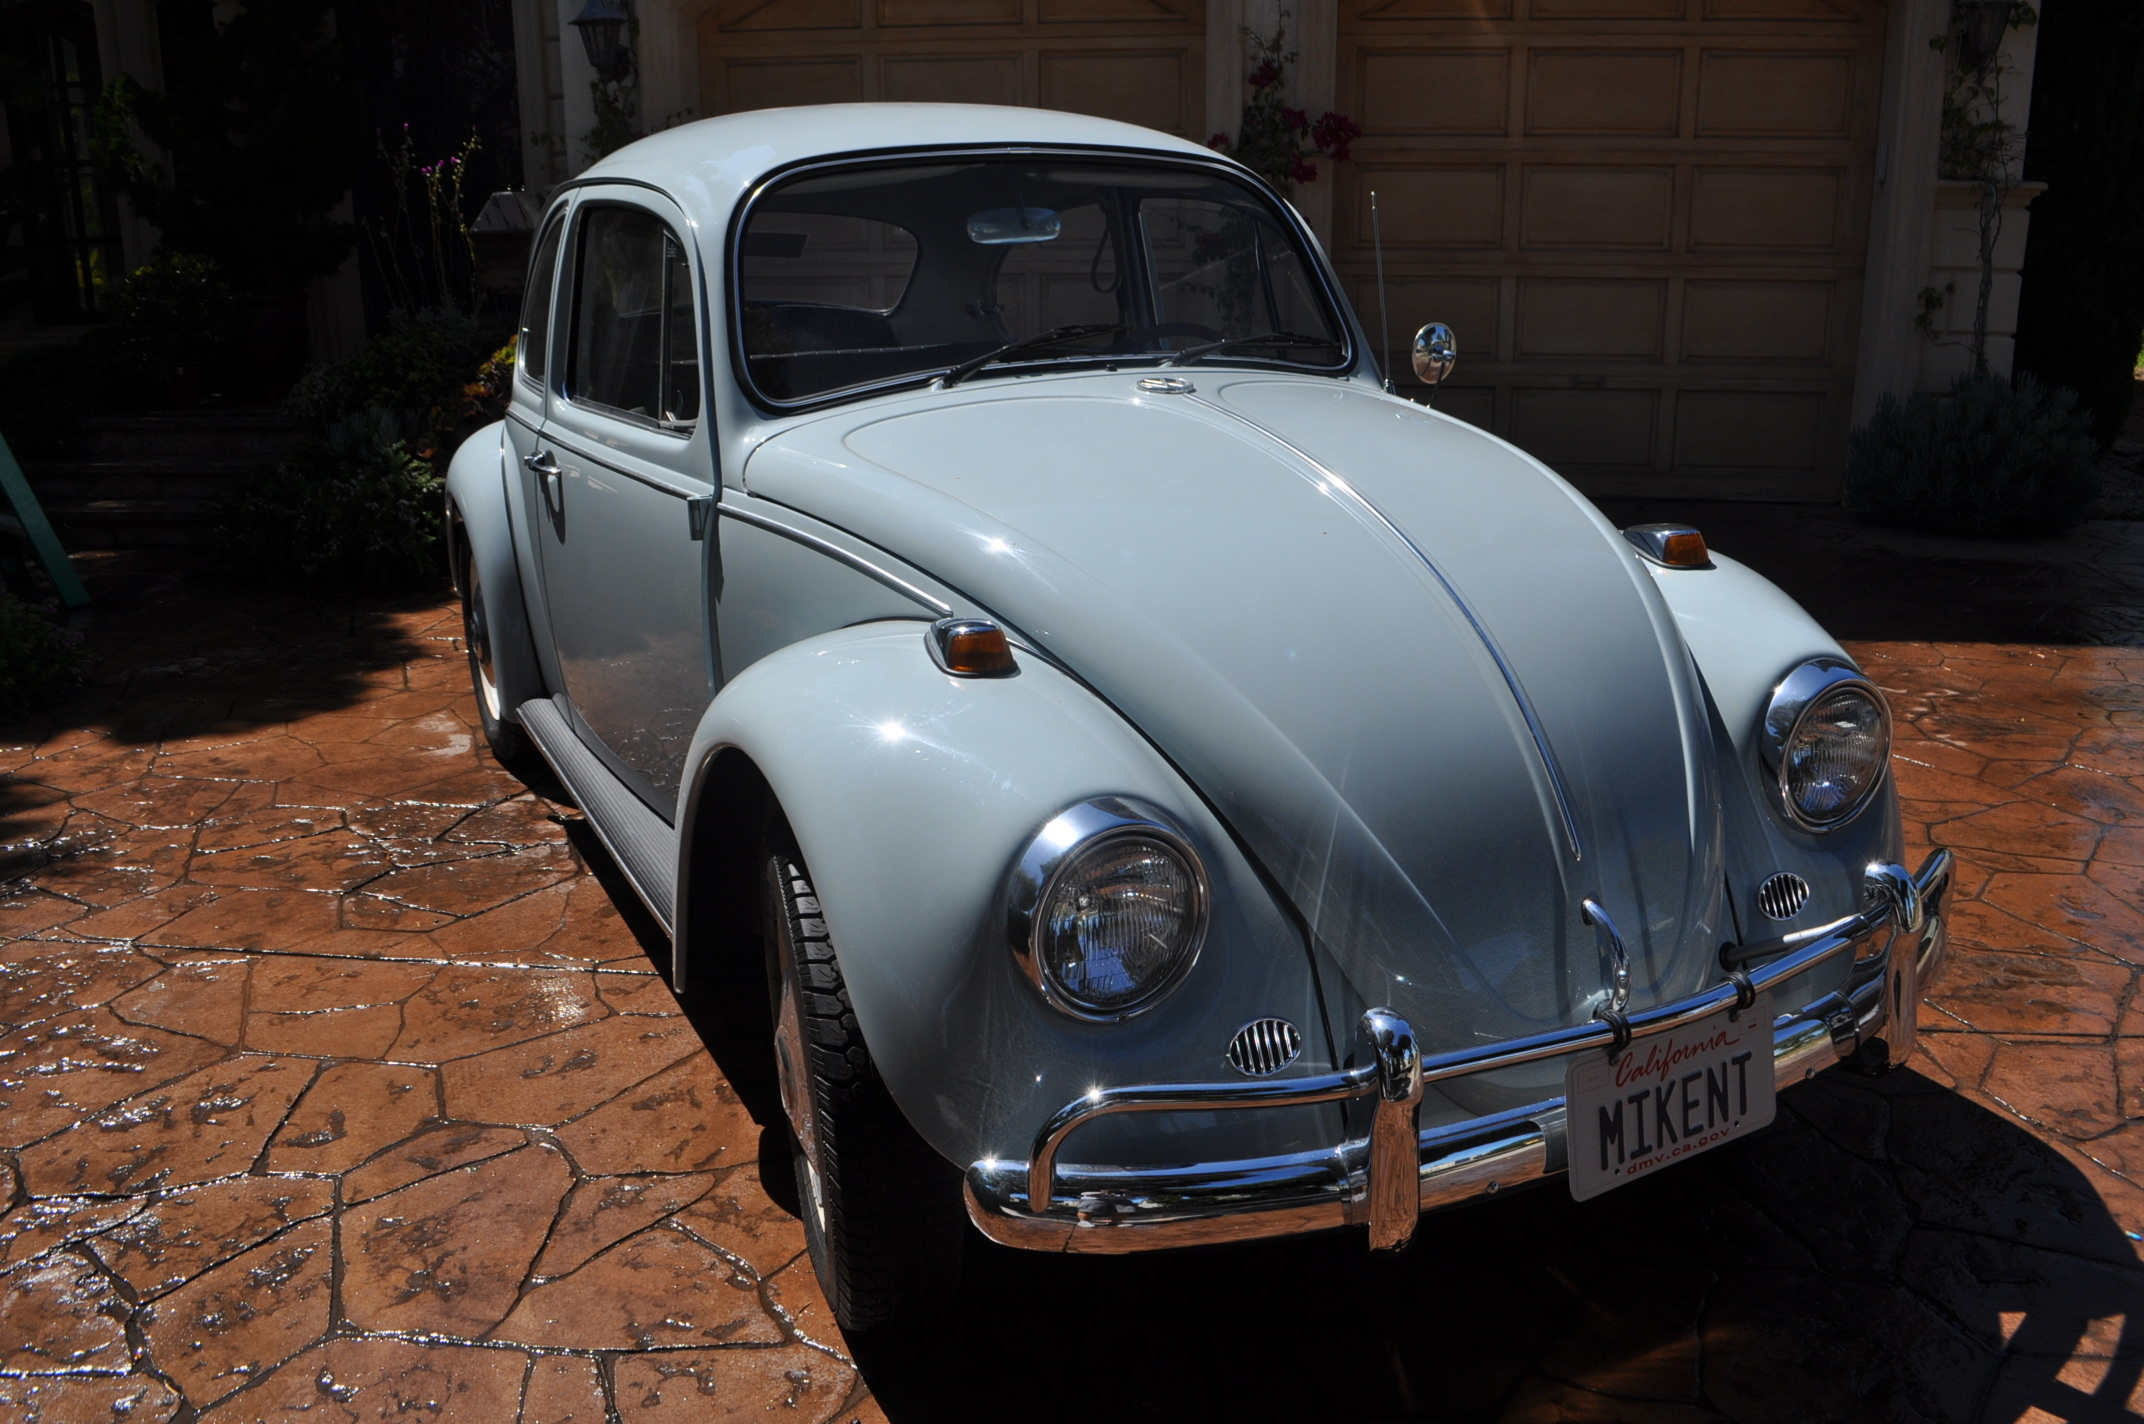 For Sale L639 Zenith Blue 67 Beetle 1967 Vw 2000 Fuel Filter Fresh To The Market Here At This Is A Respectable Unmolested Car Gem Also Took First Place Best